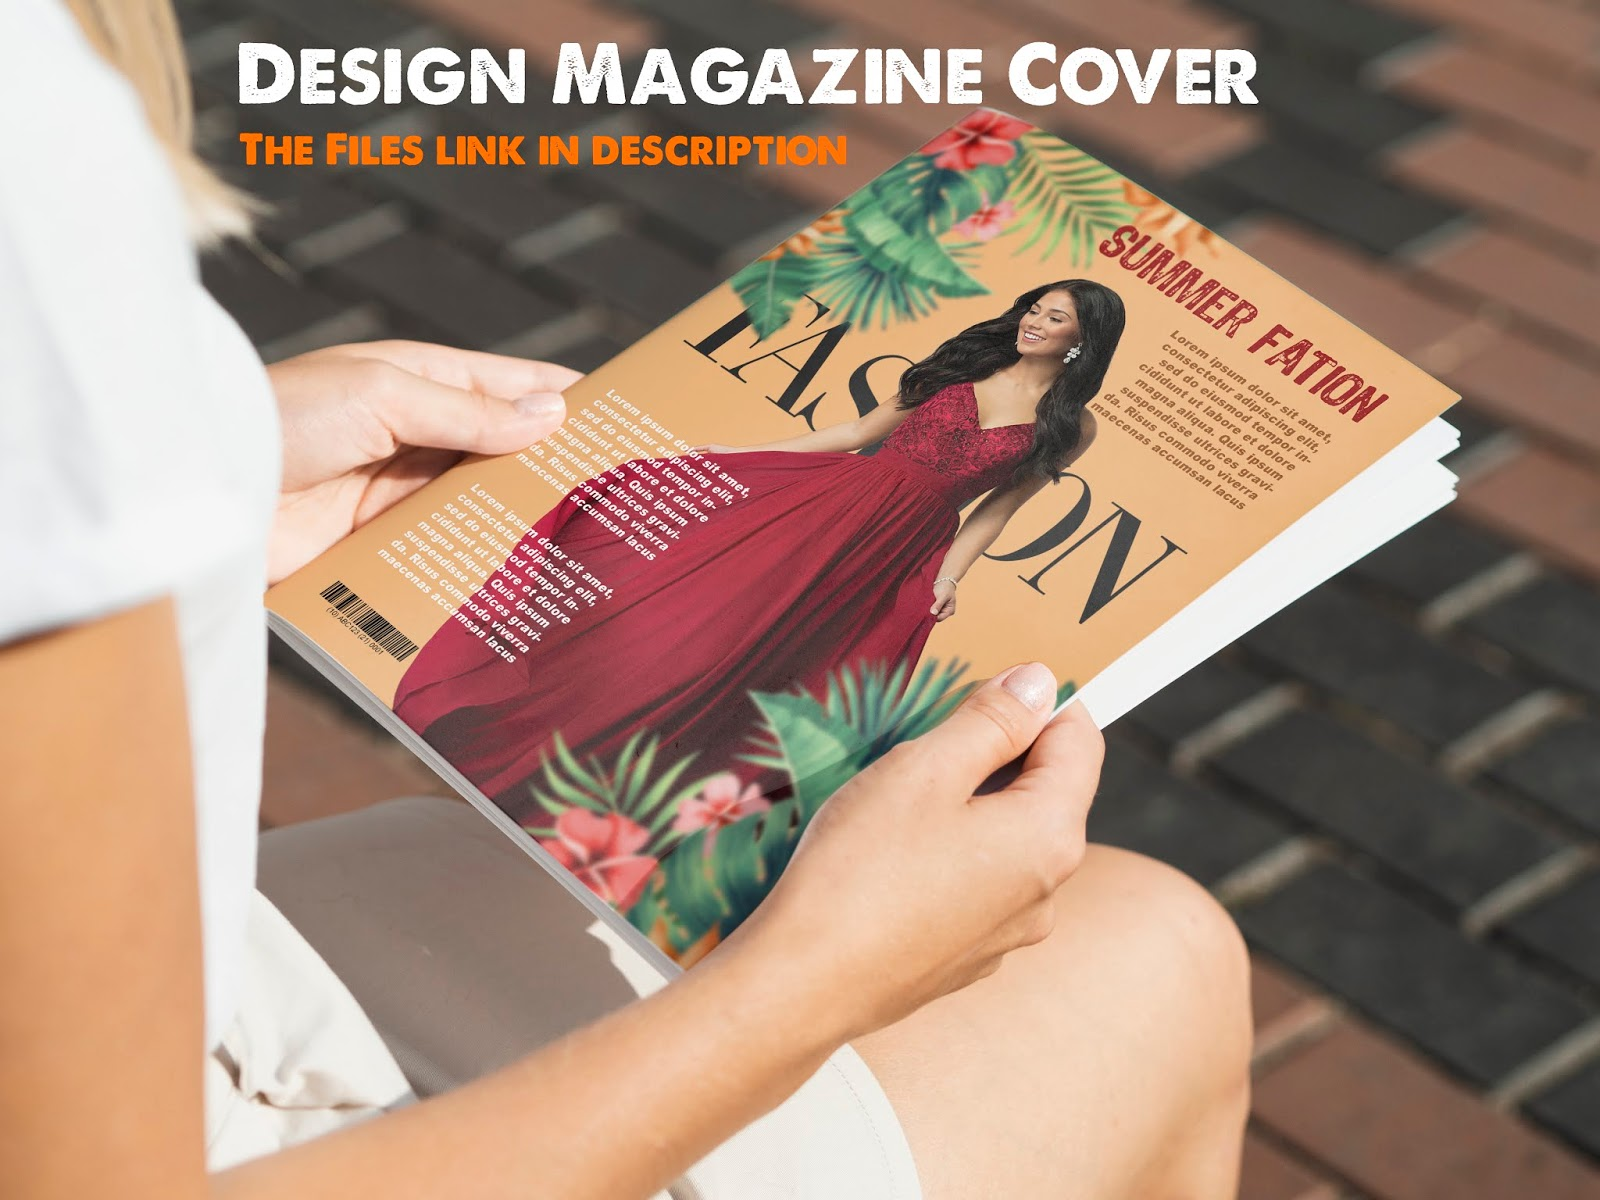 Magazine Cover Design - Photoshop Tutorial